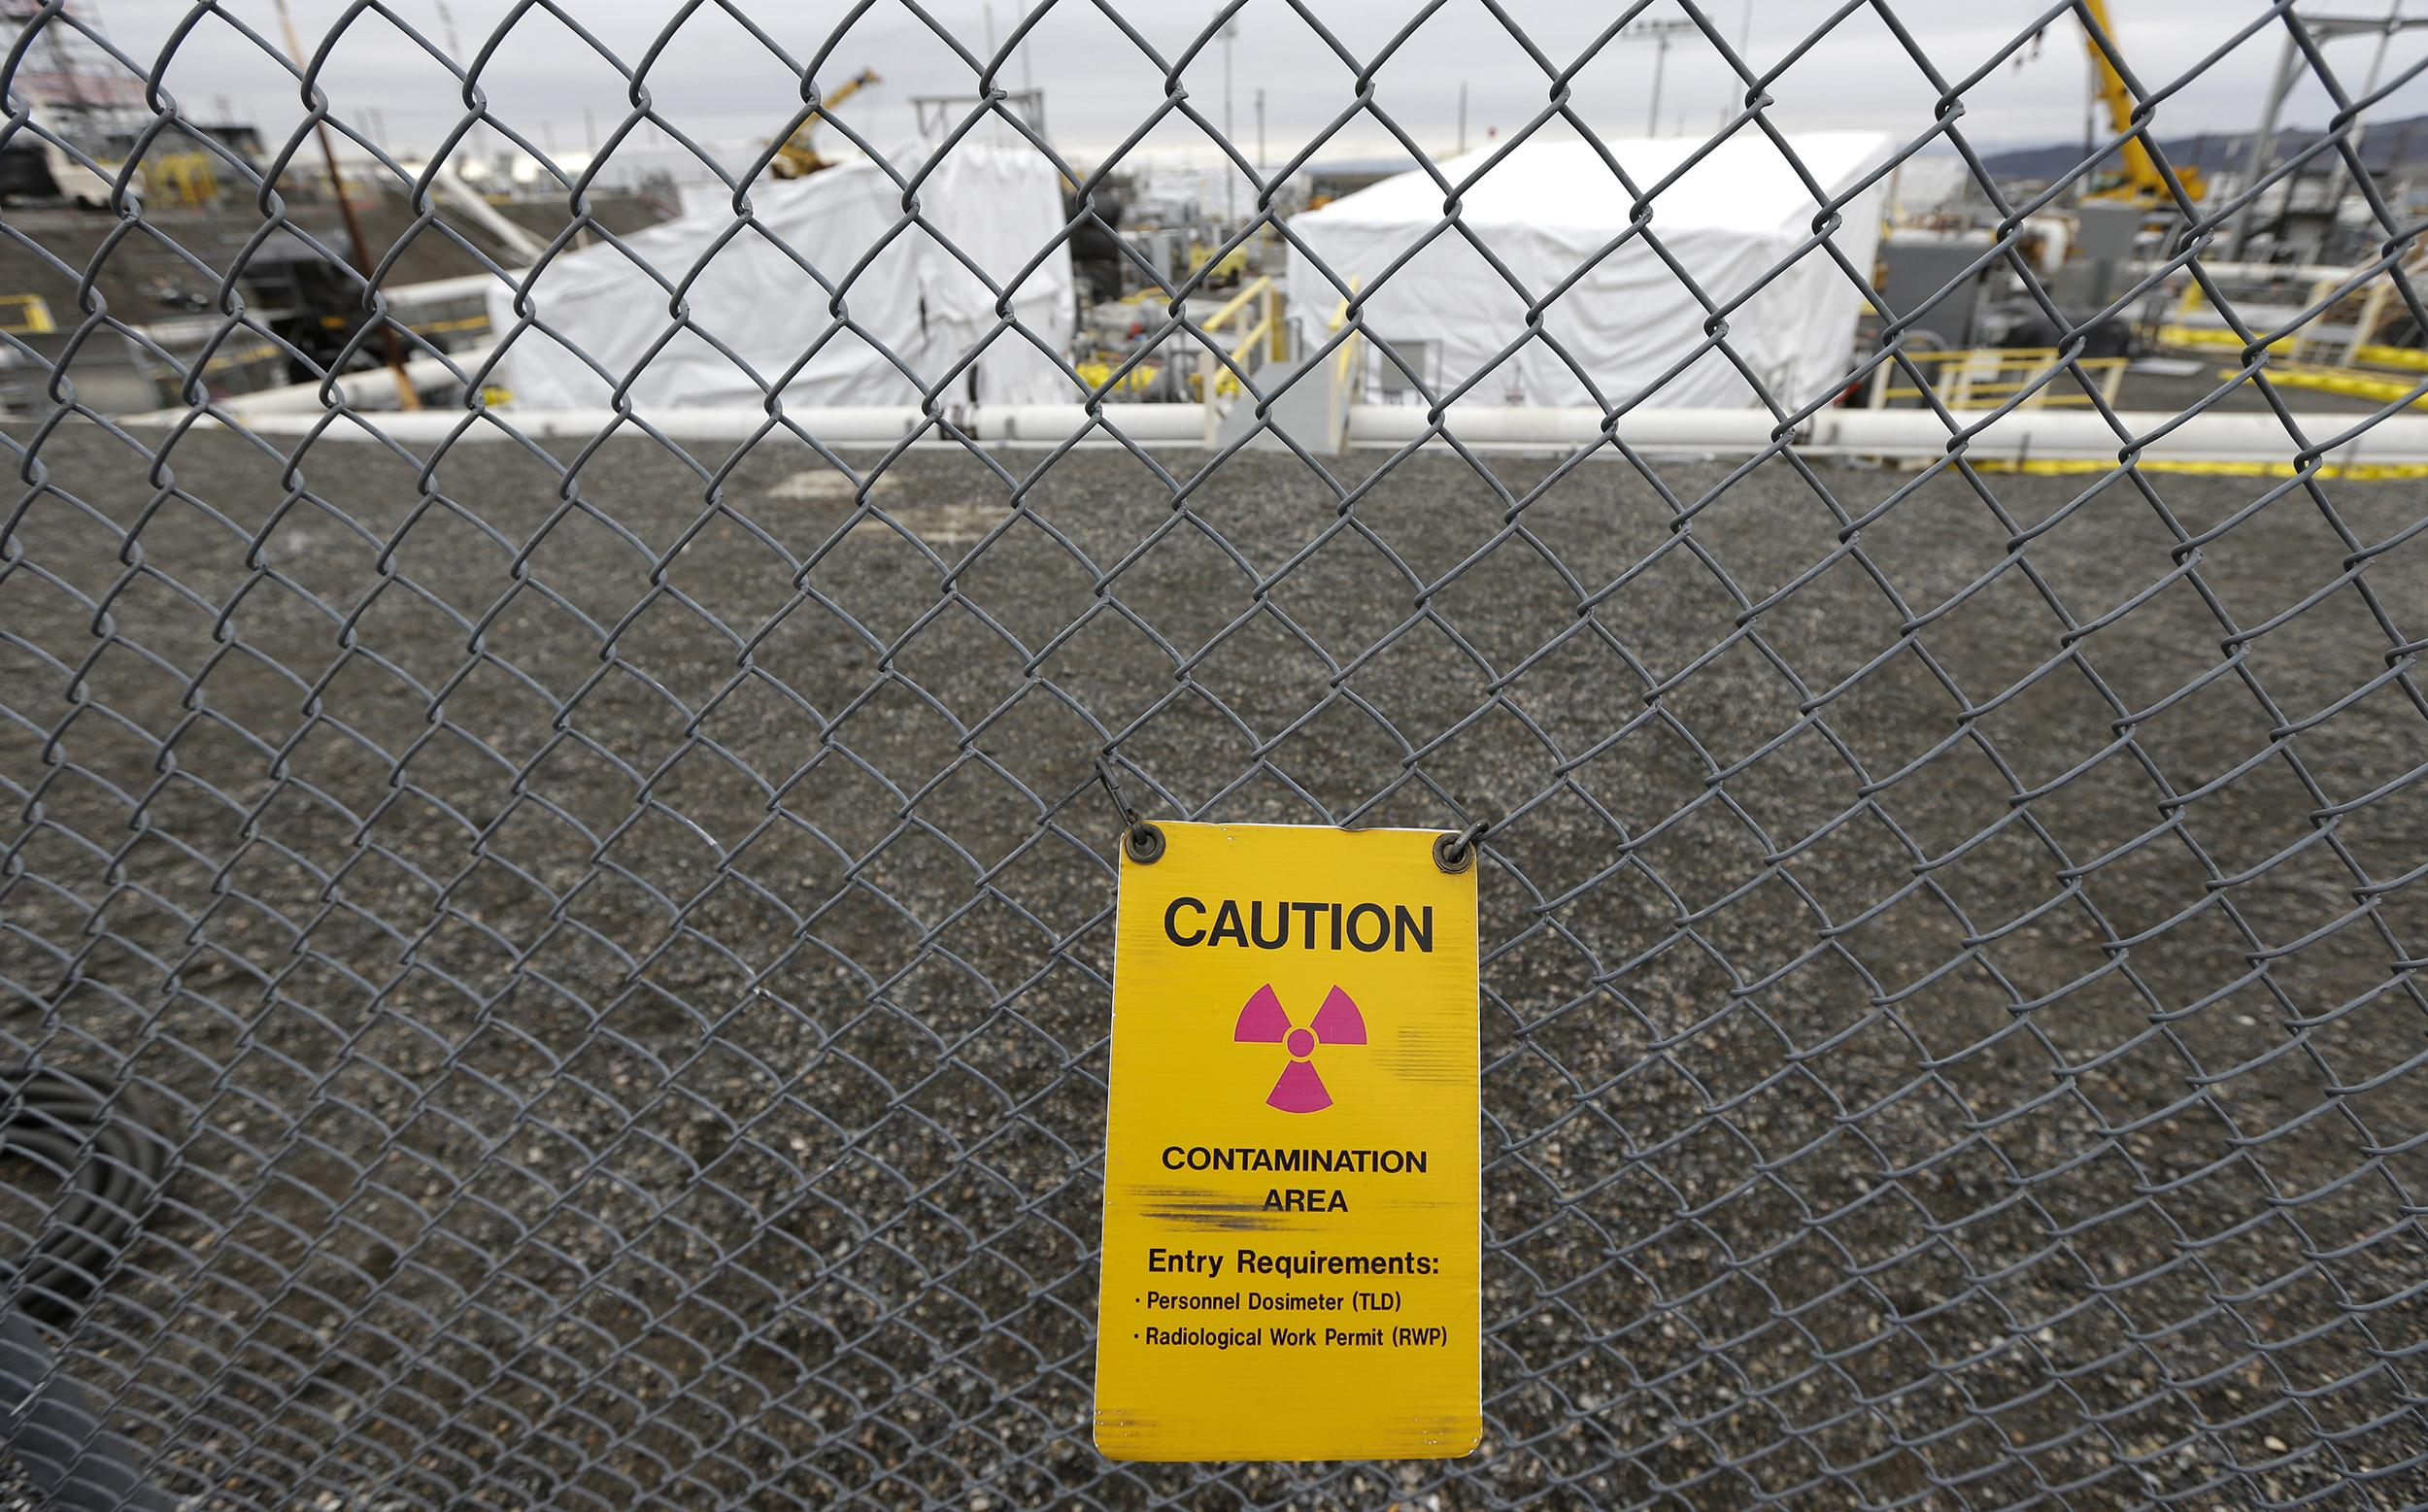 Image: A warning sign is attached to a fence at the 'C' Tank Farm at the Hanford Nuclear Reservation, near Richland, Wash.